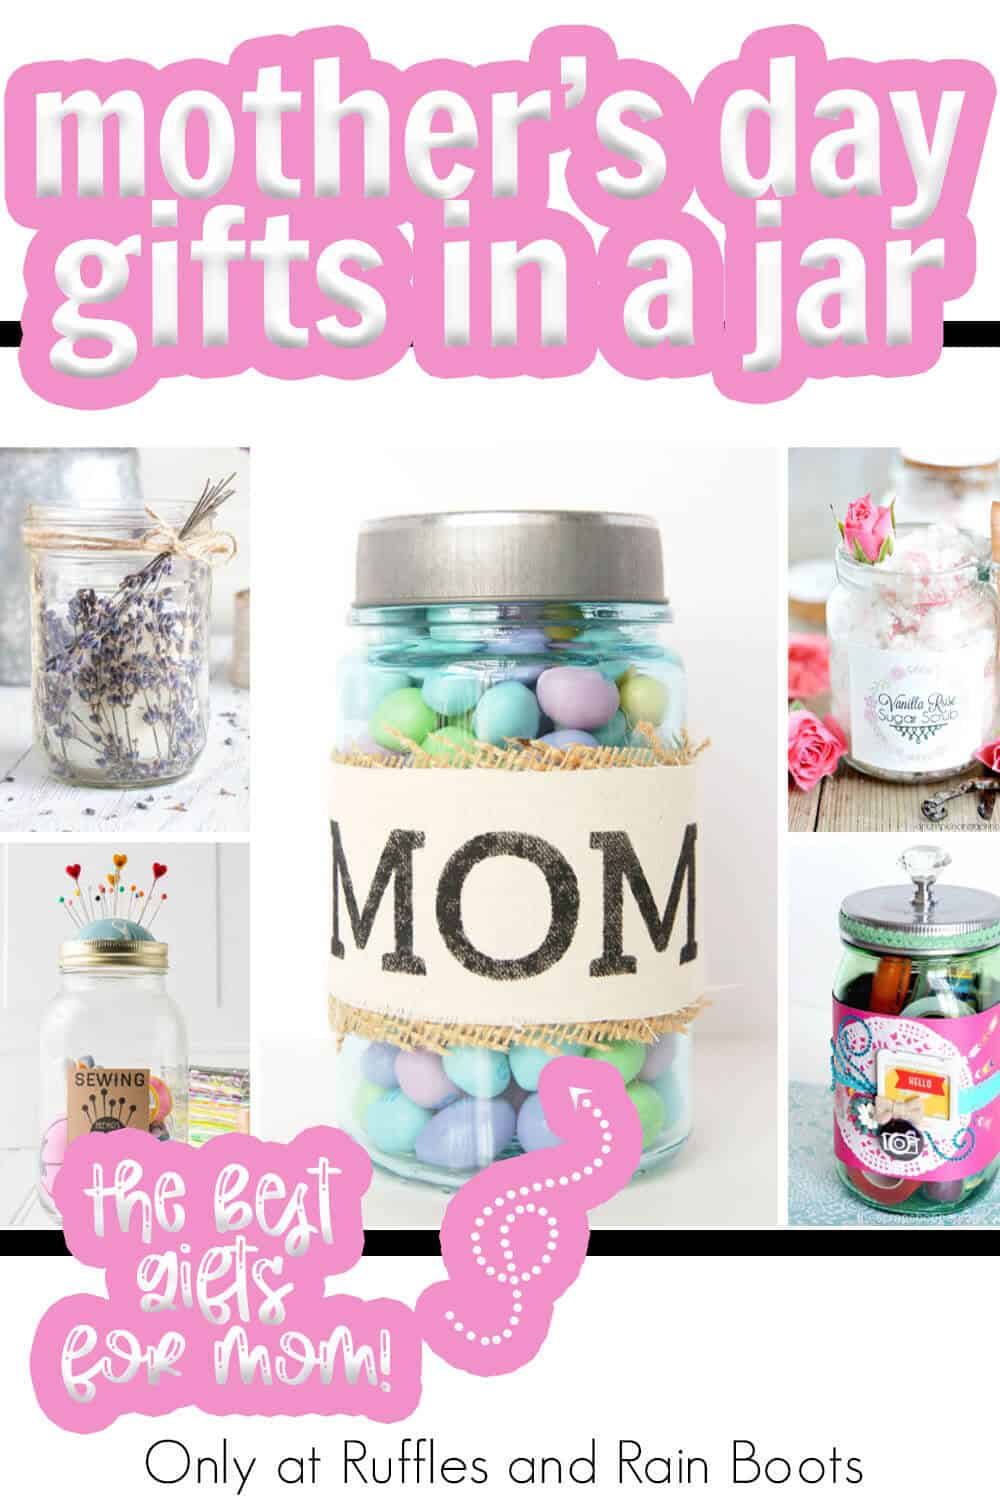 photo collage of porch gift ideas for mother's day with text which reads mother's day gifts in a jar the best ideas for mom!